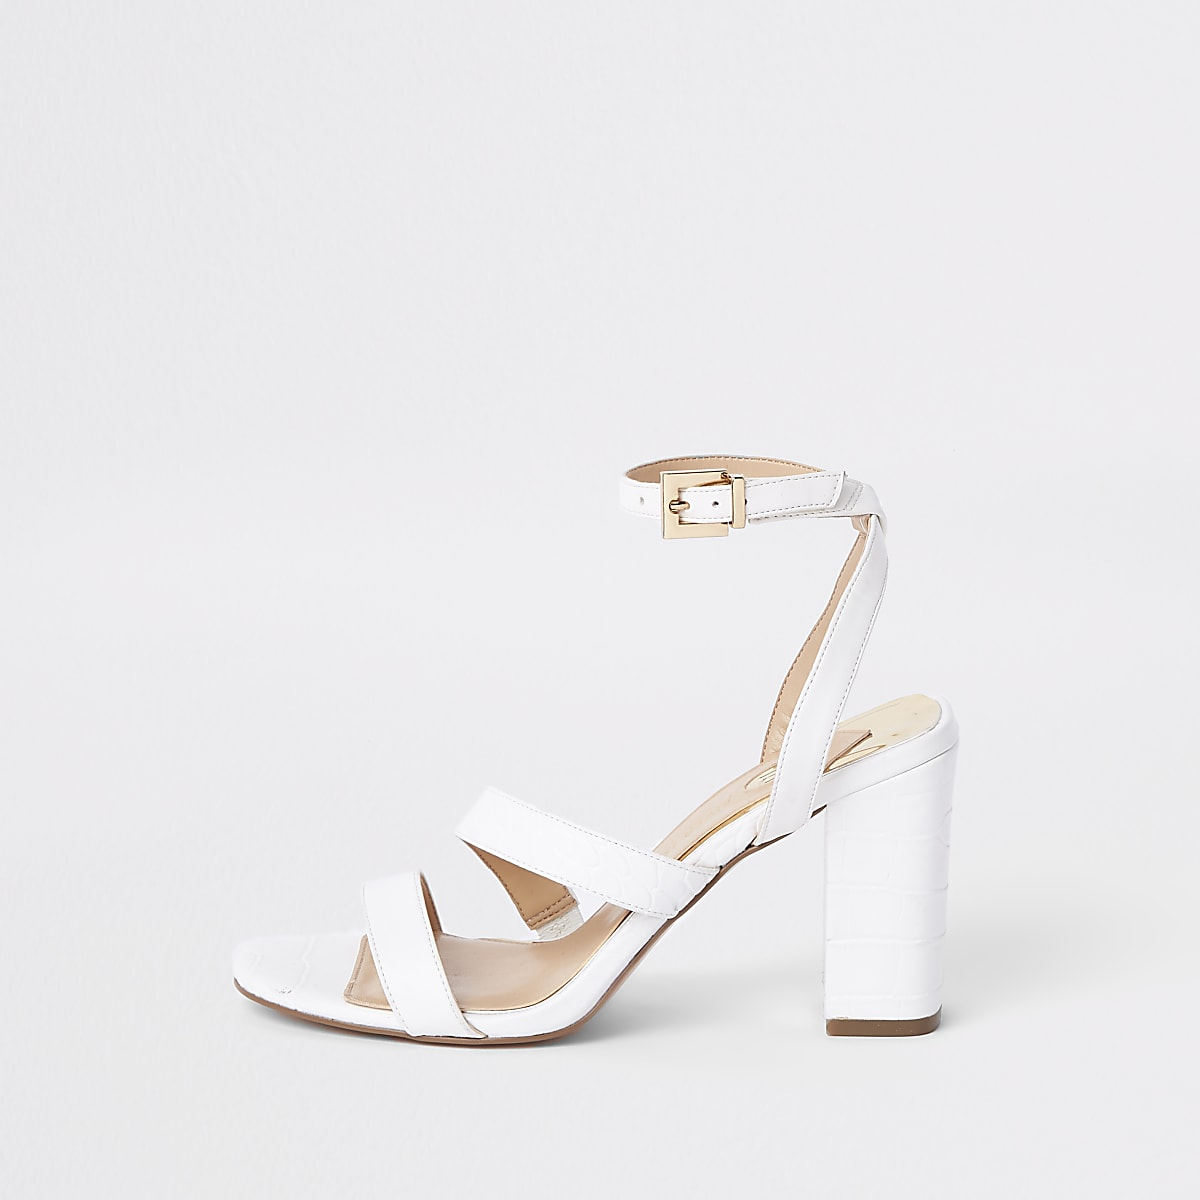 97e8f876bc2 White asymmetric strappy block heel sandals - Sandals - Shoes   Boots -  women